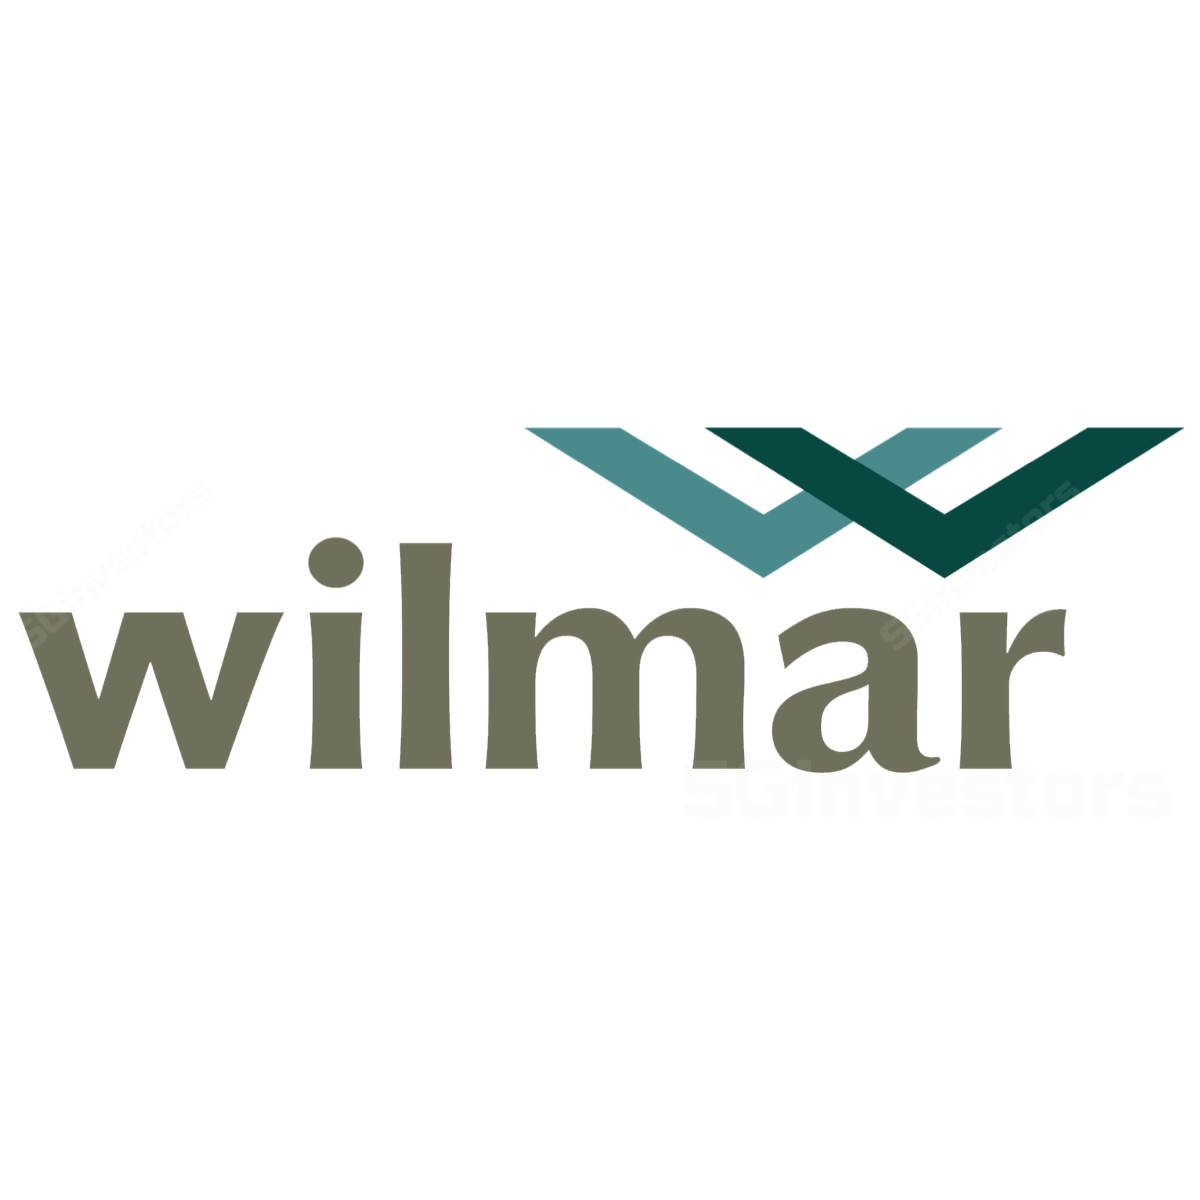 Wilmar - OCBC Investment 2017-05-15: Strong Start To The Year